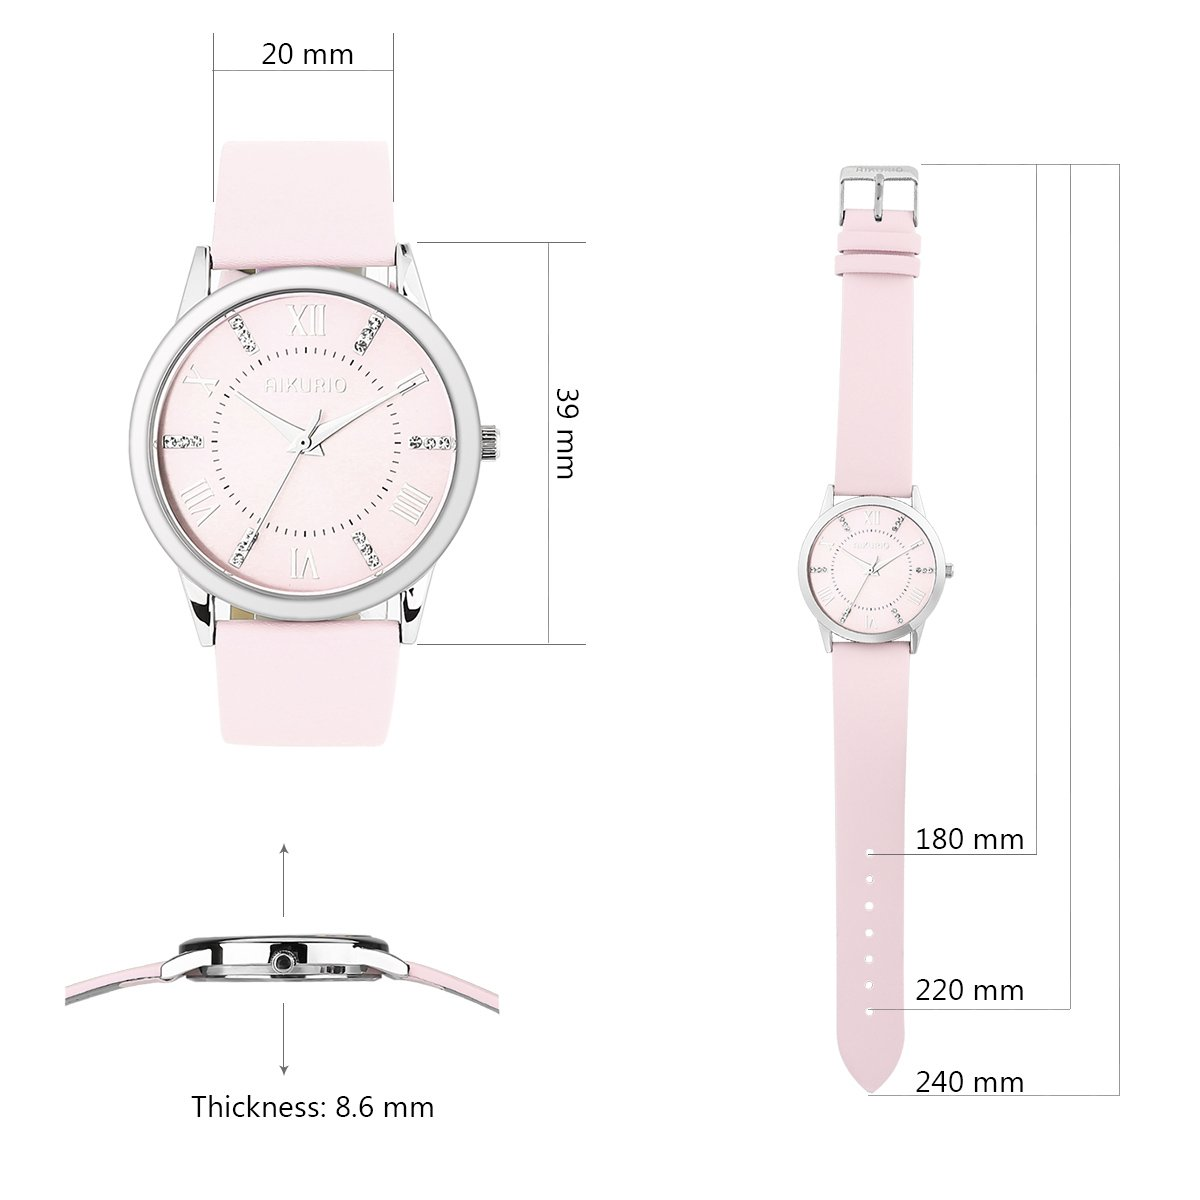 AIKURIO Women Ladies Wrist Watch Waterproof Quartz Watch with Crystal Dial Clock Leather for Female Luxury Fashion Business Classic (Pink) by AIKURIO (Image #2)